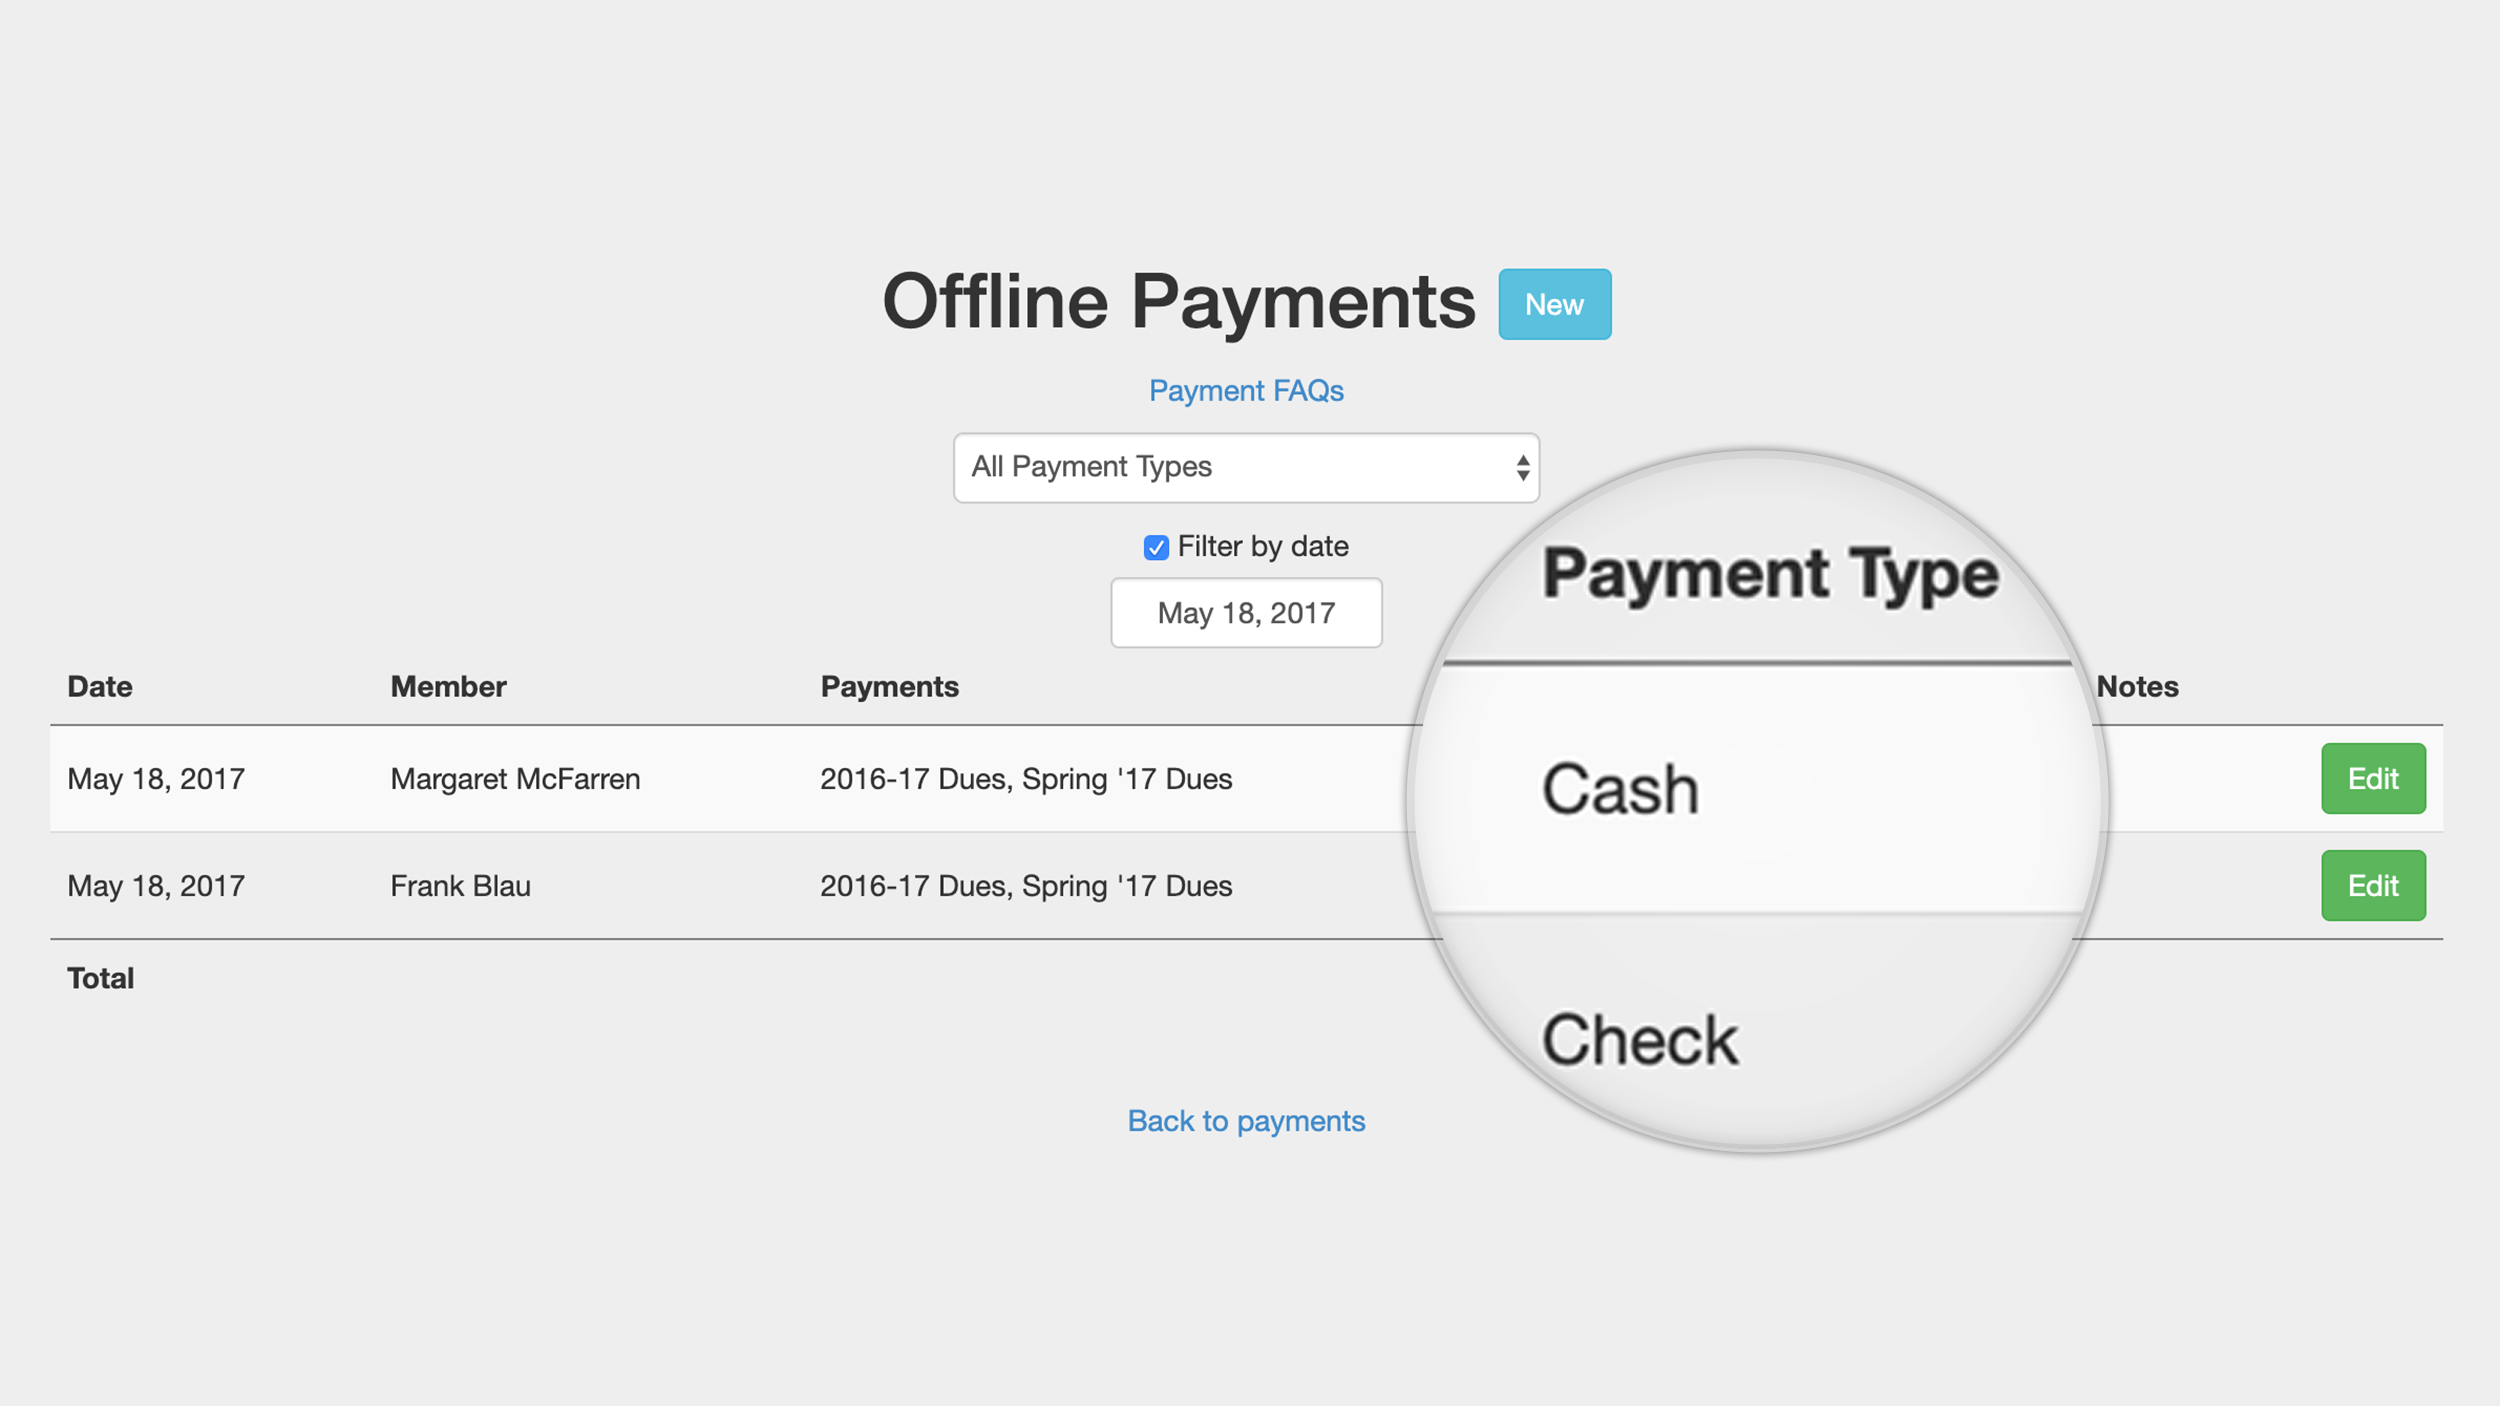 offline-payments.png